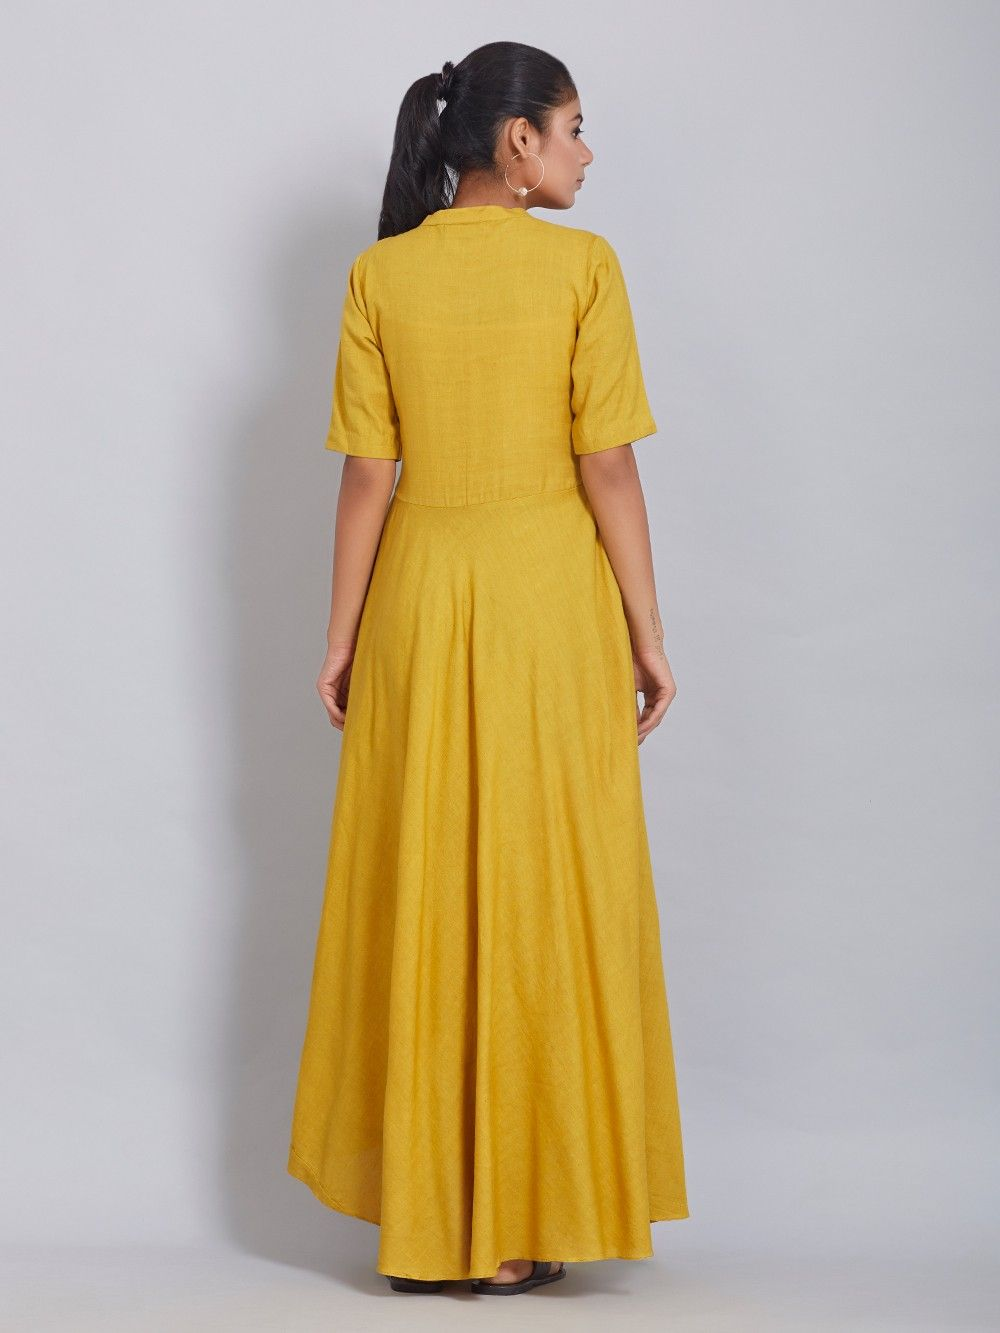 Buy Mustard Yellow Cotton Linen Dress Online At Theloom